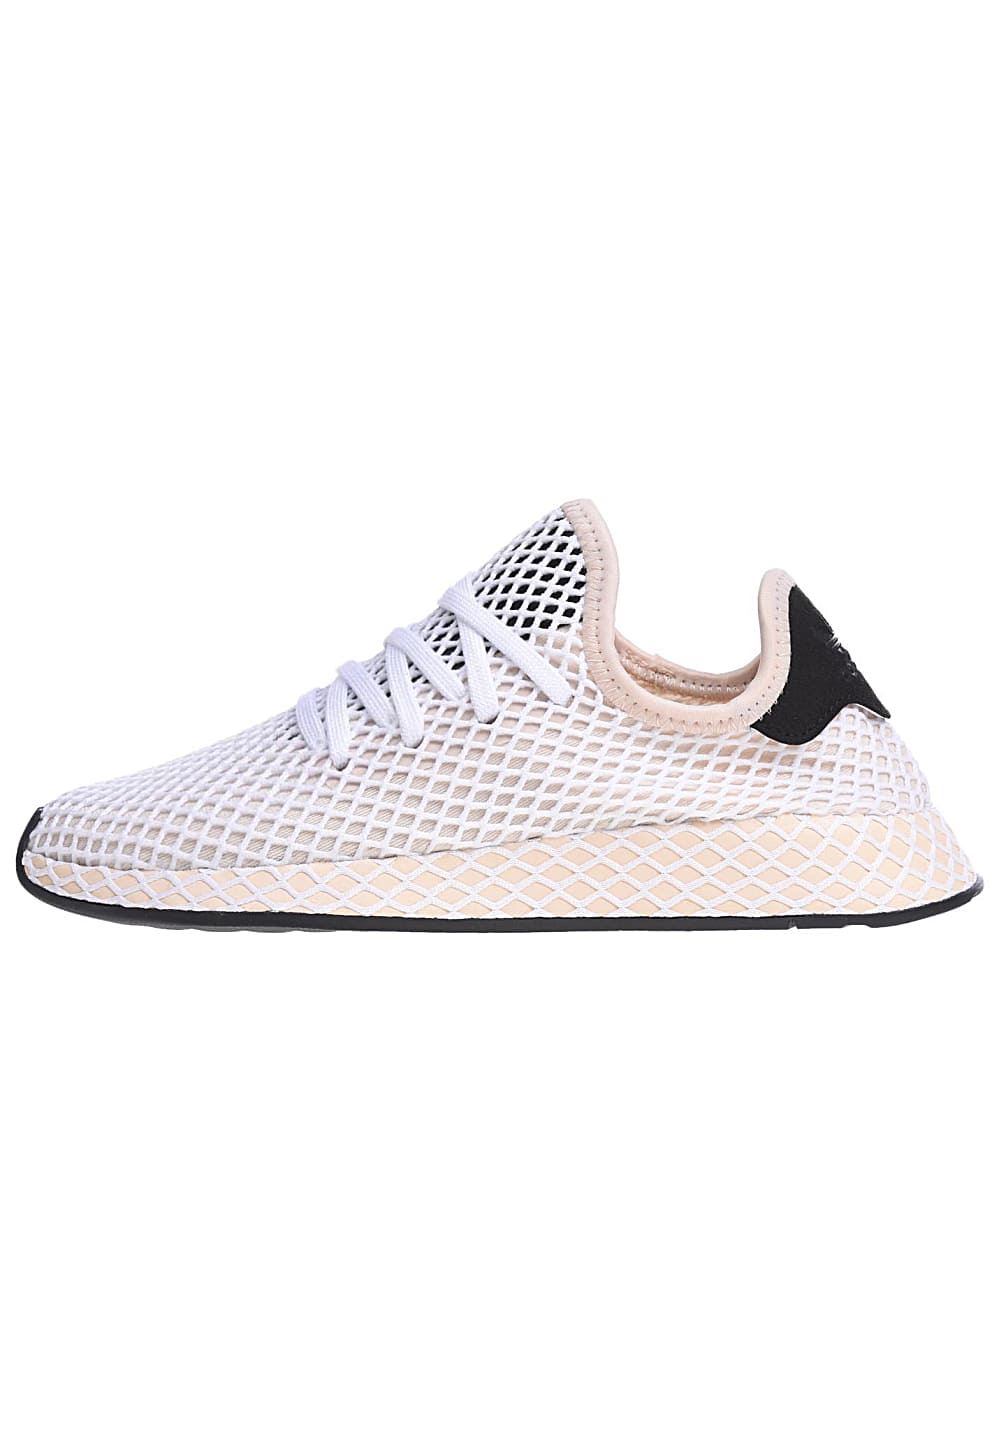 adidas Originals Deerupt Runner - Sneaker für Damen - Weiß - Planet ...